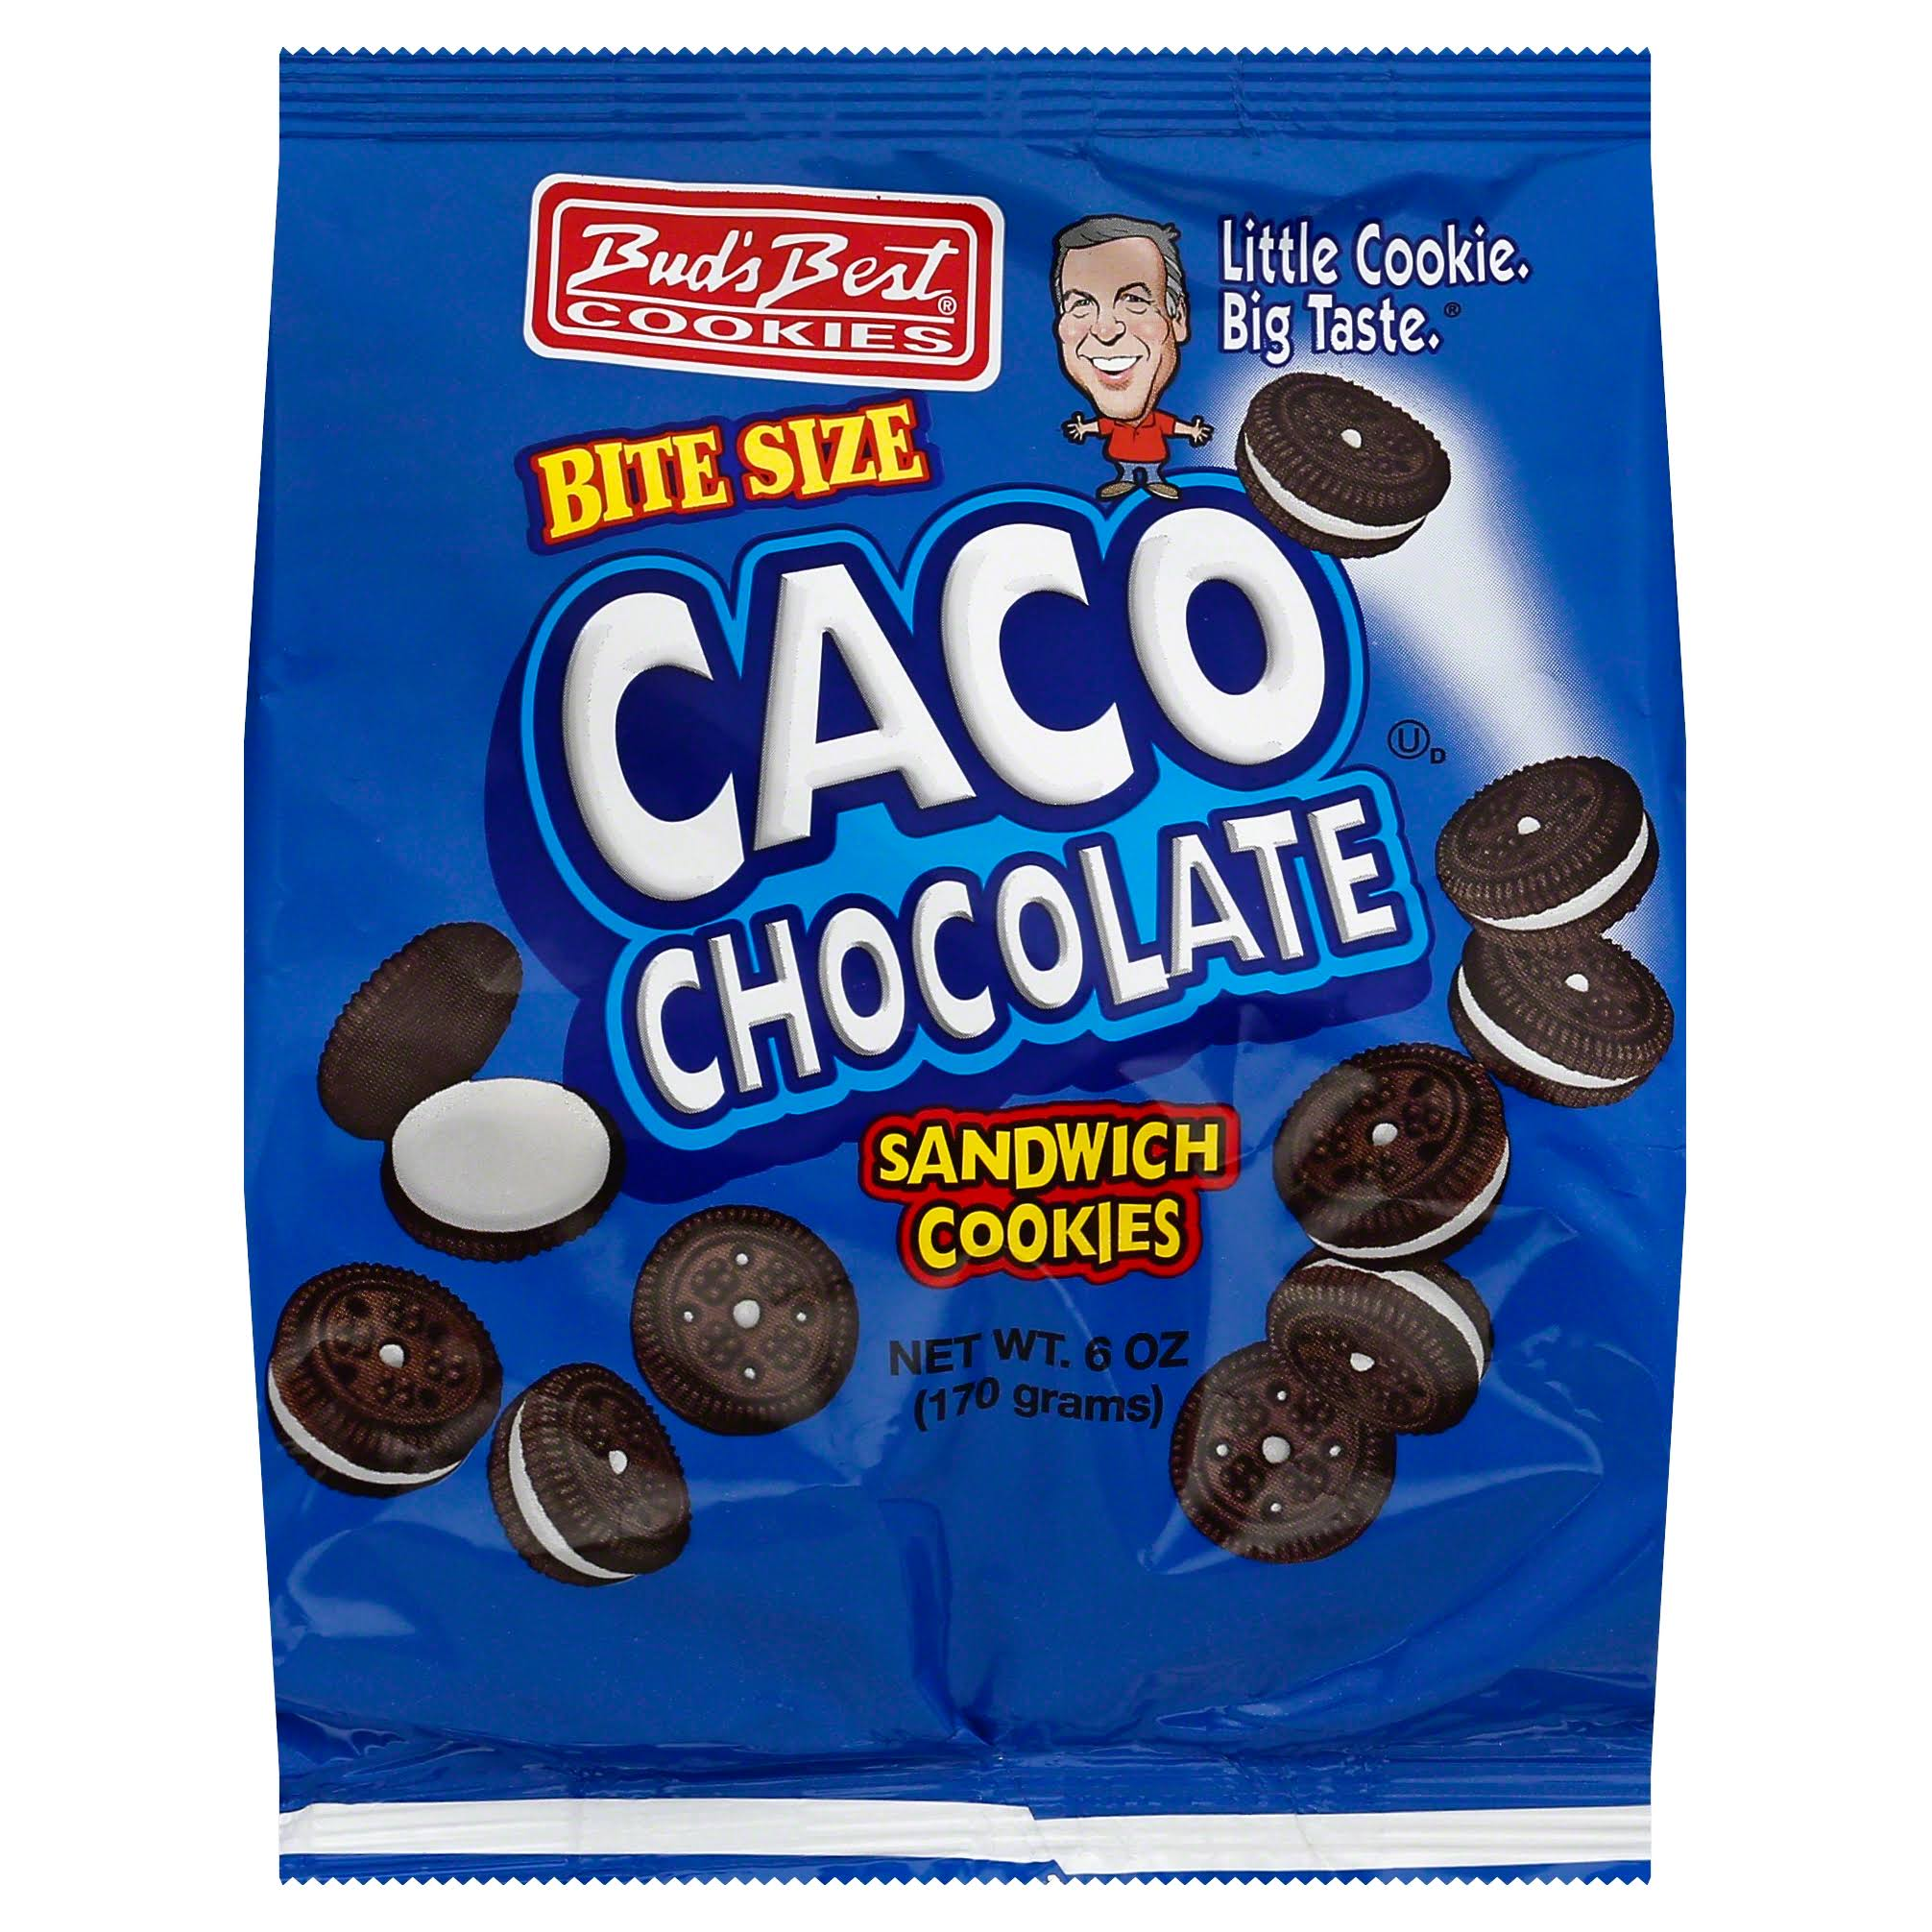 Bud's Best Cookies Sandwich Cookies Caco Chocolate